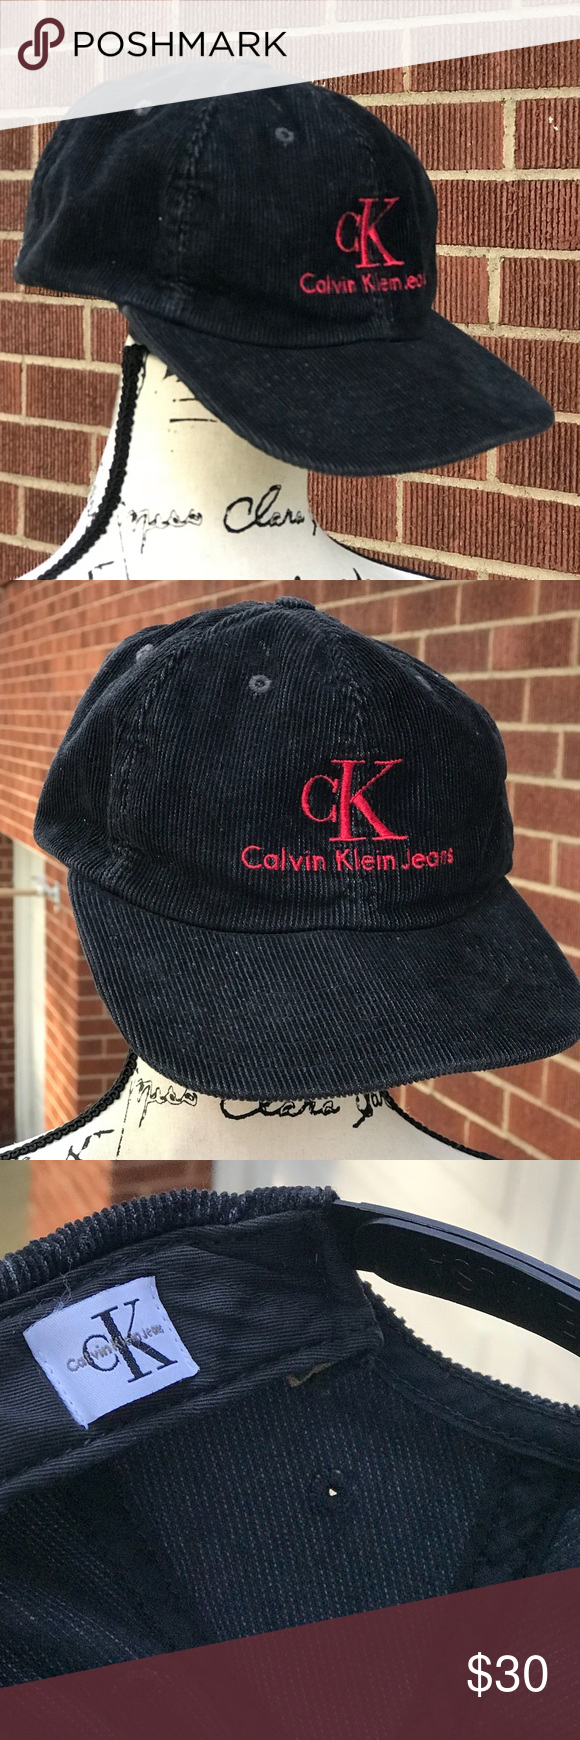 23b50066893 Vintage Calvin Klein Corduroy hat Black corduroy hat with red stitched  letters Snap back fit Calvin Klein Jeans Accessories Hats